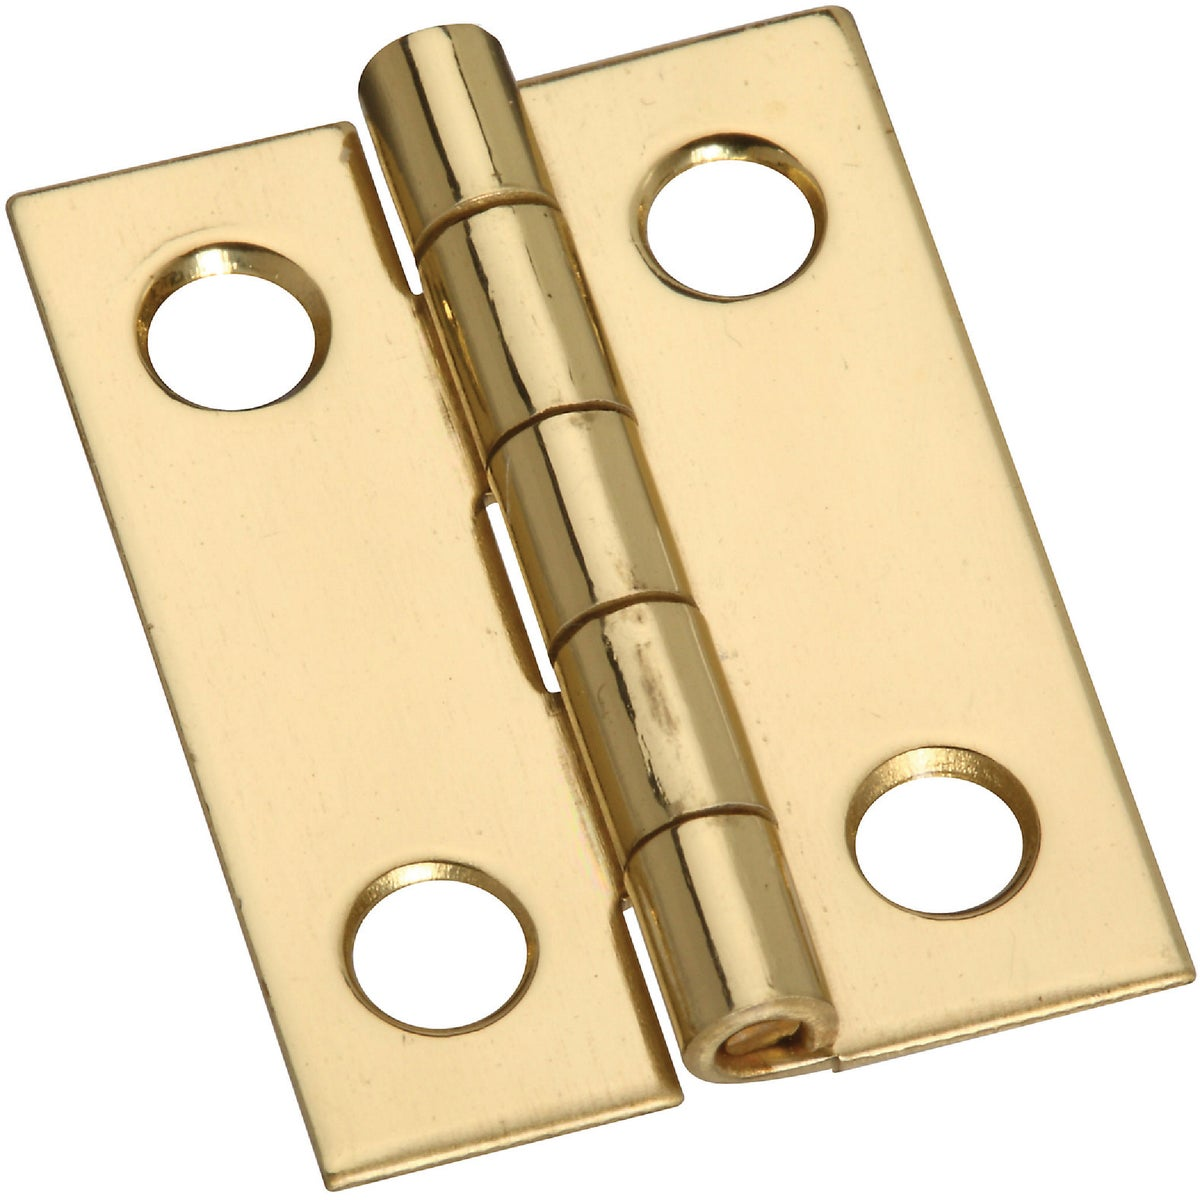 "1X3/4"" NARROW HINGE - N211177 by National Mfg Co"